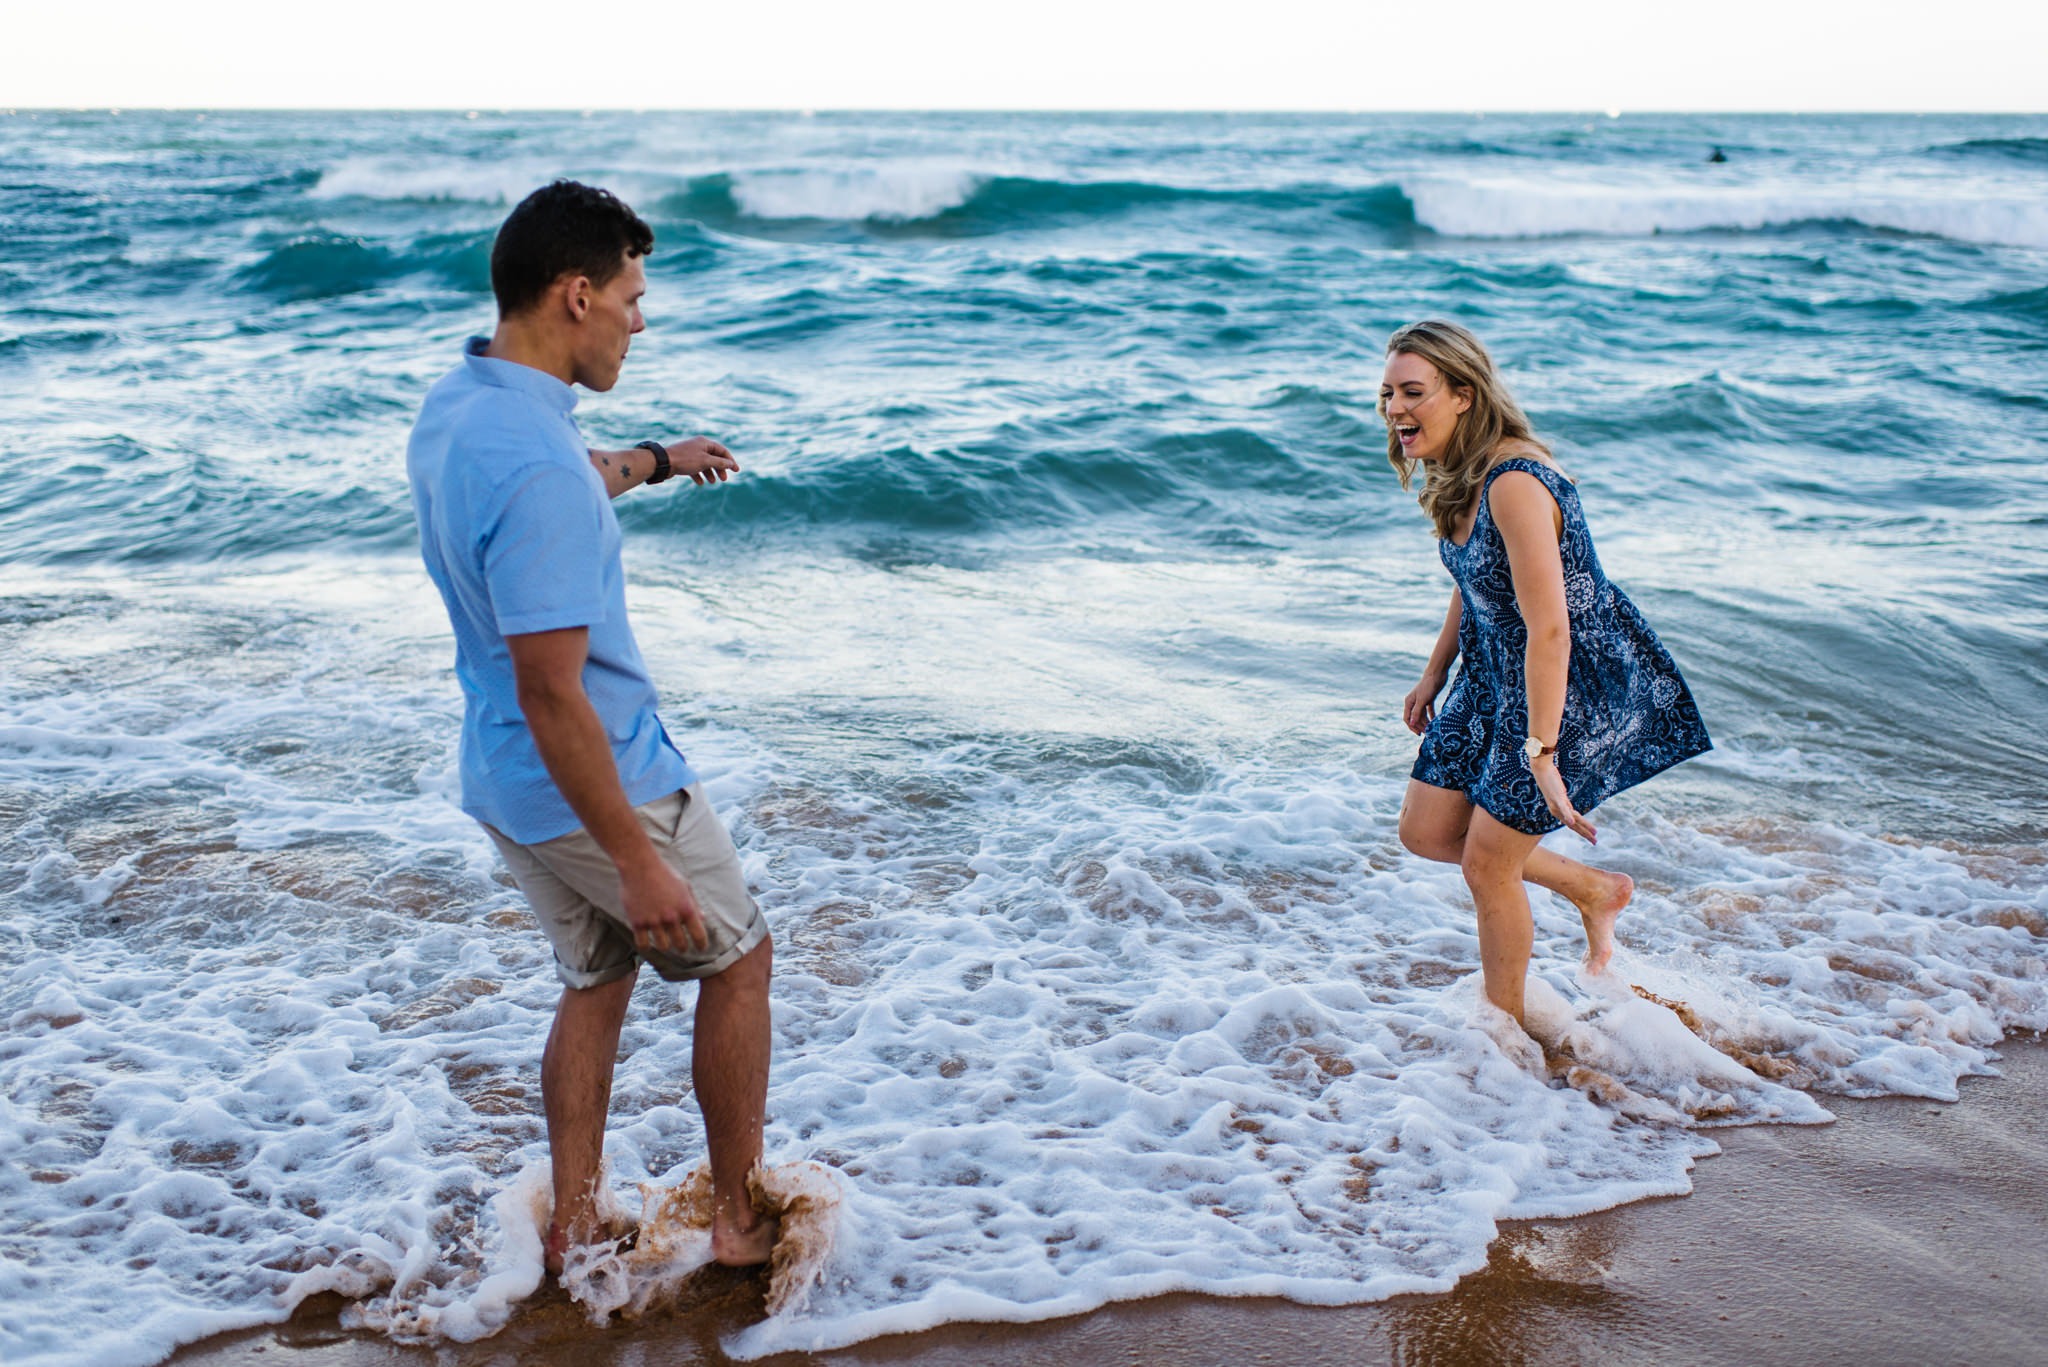 Couple playing in the waves